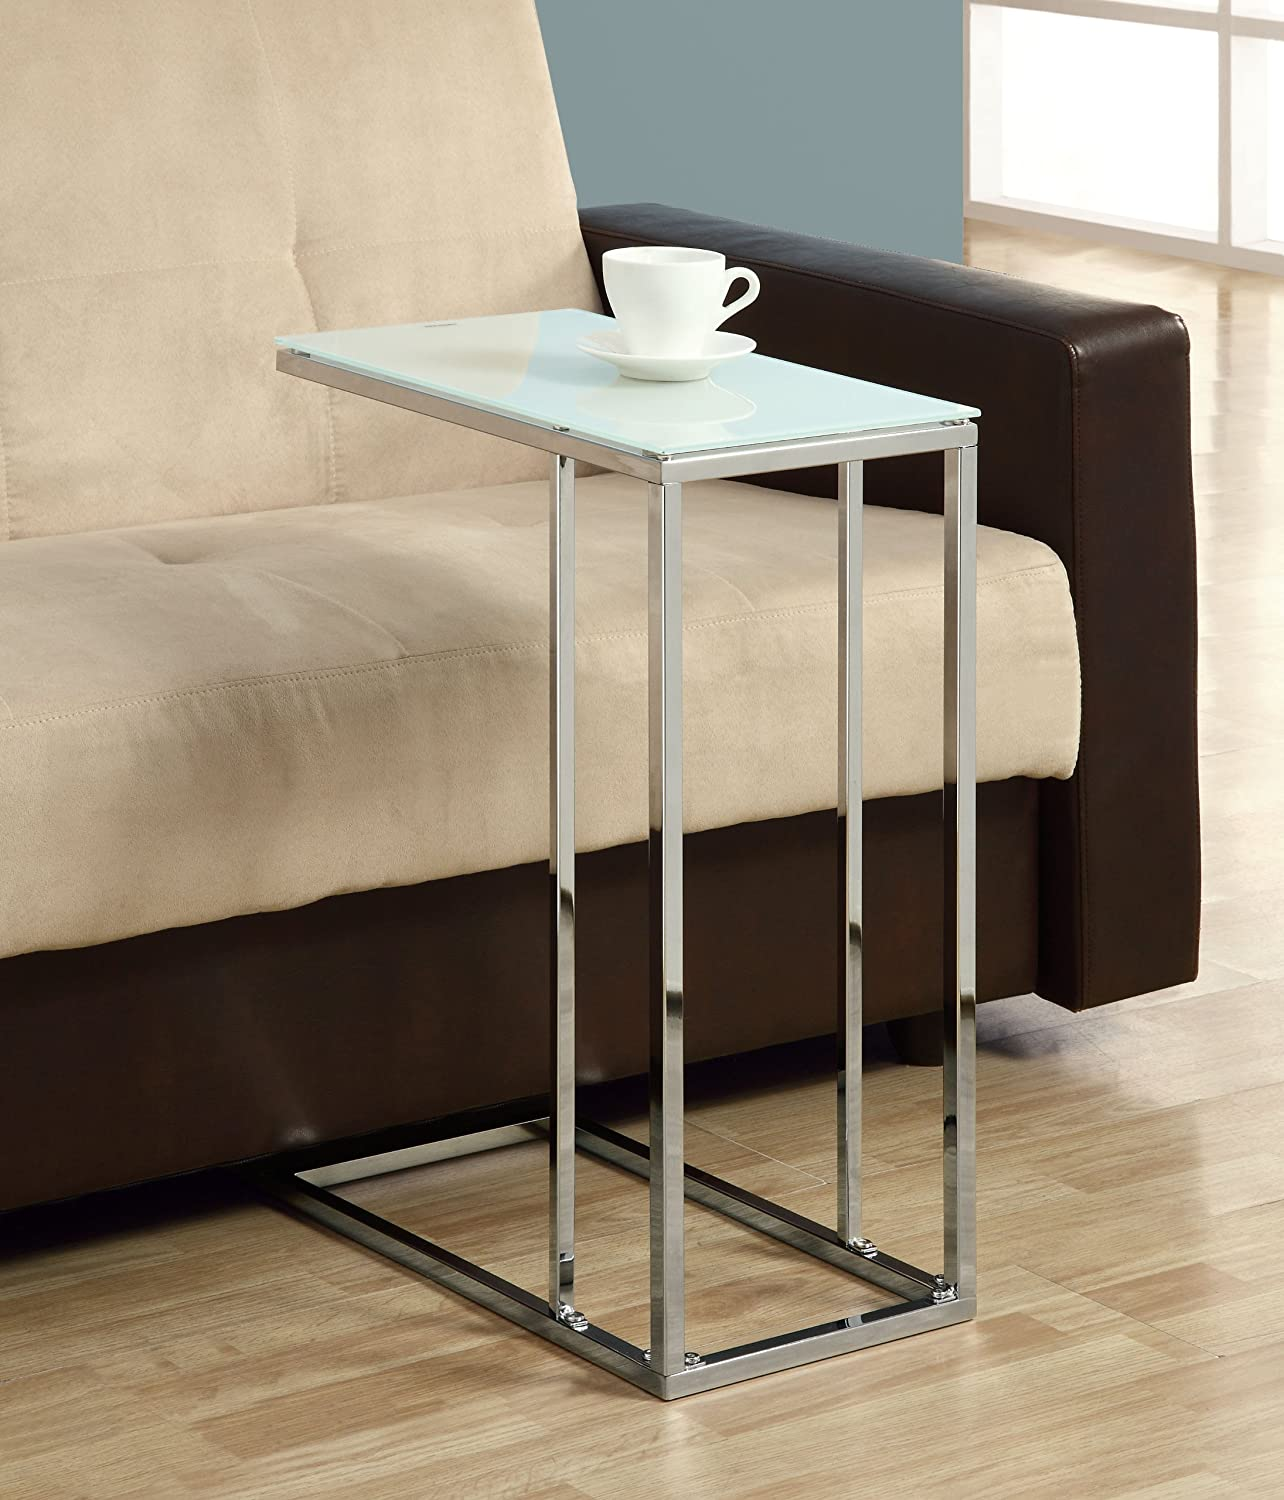 New living room coffee end table slide under couch side metal glass top chrome ebay Side and coffee tables